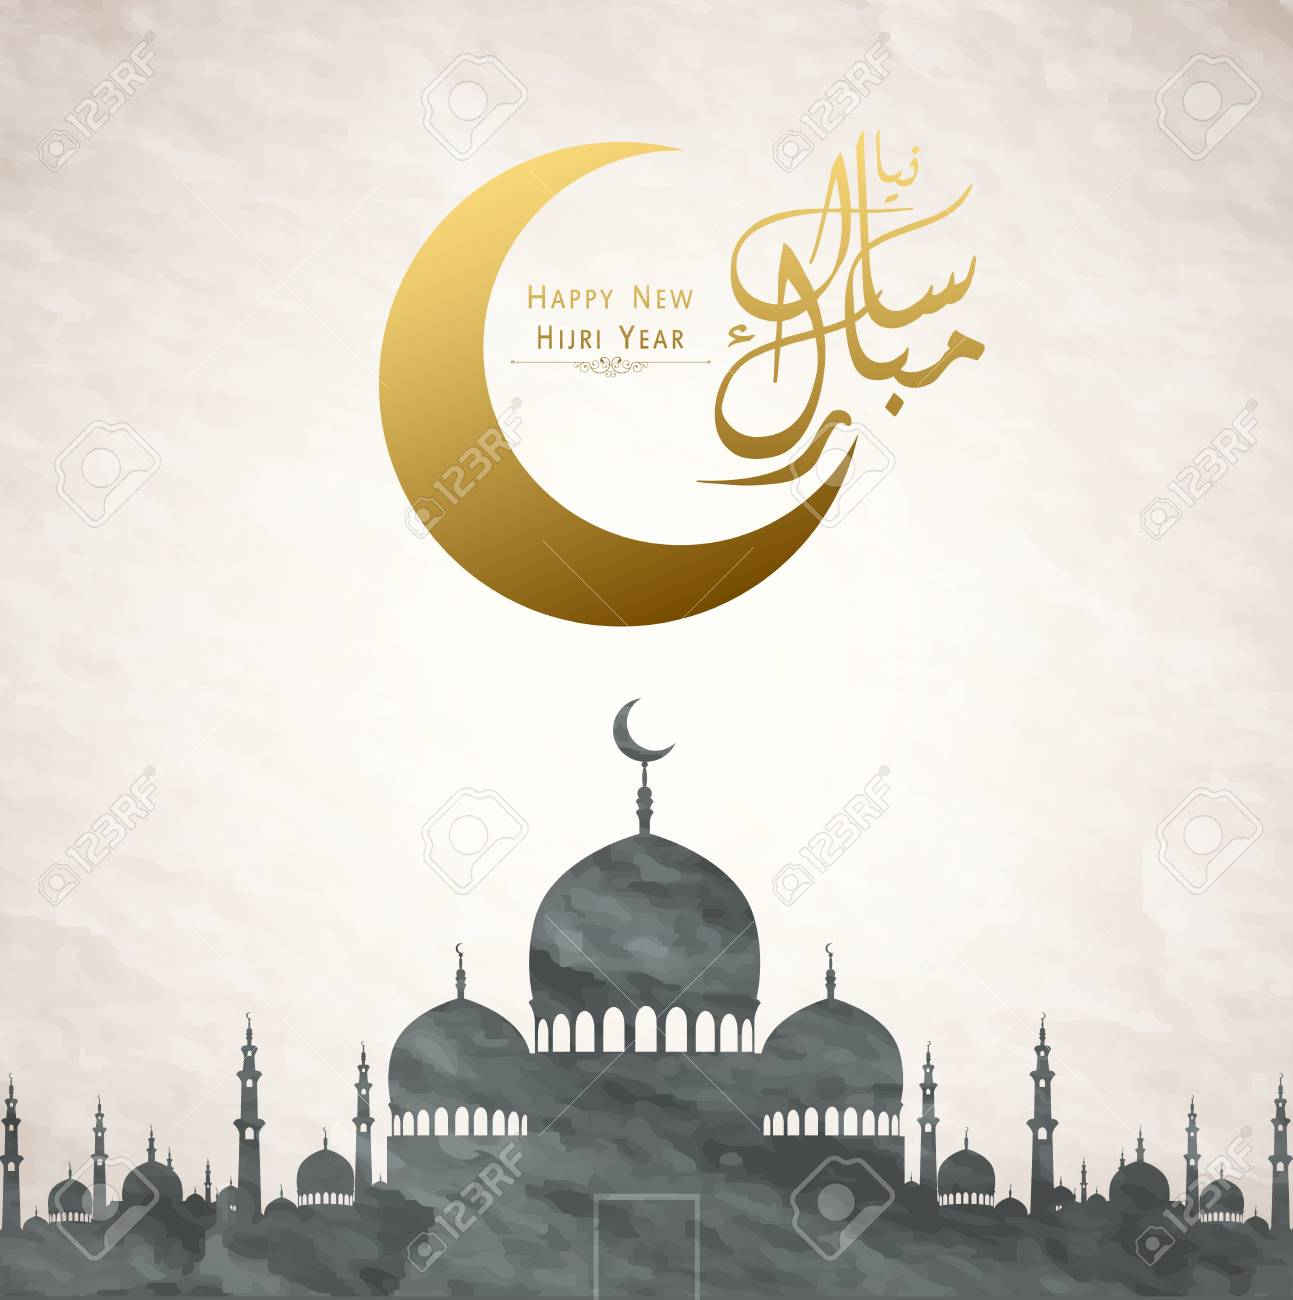 Happy New Hijri Year Islamic New Year Design Background Stock Photo